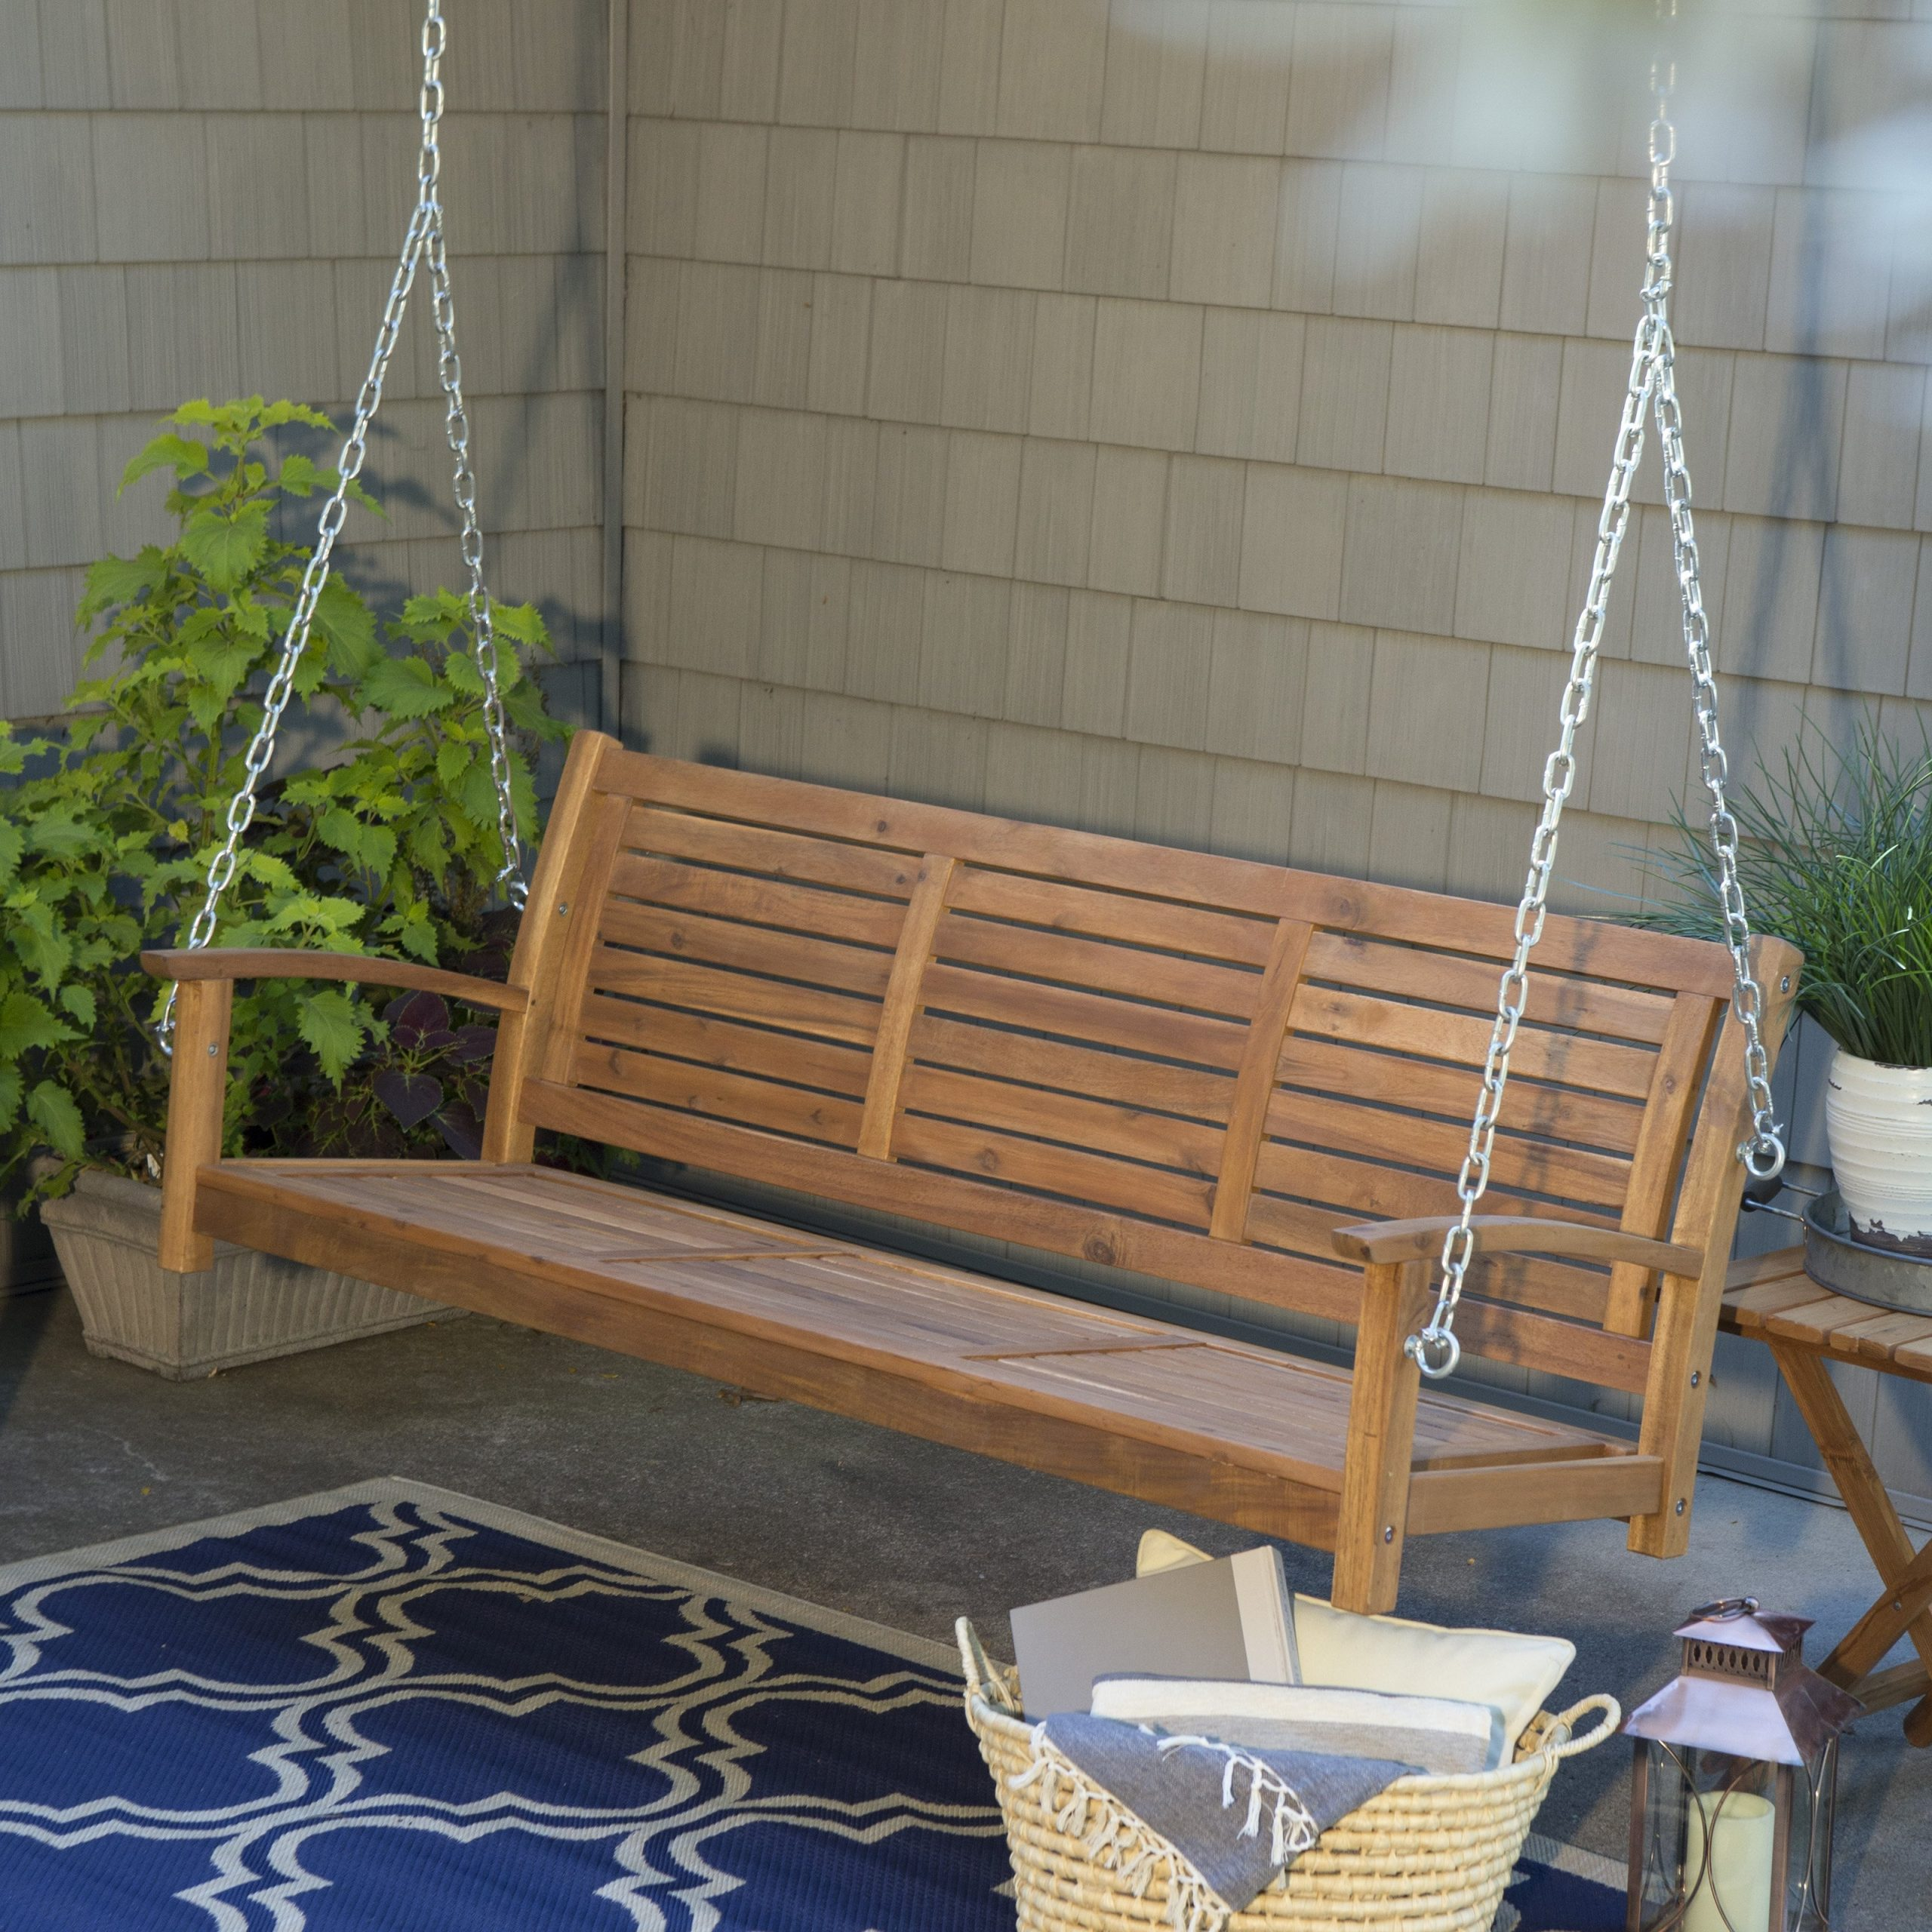 Porch Swings With Chain Within Popular Hanging Chain For Porch Swing (View 13 of 30)